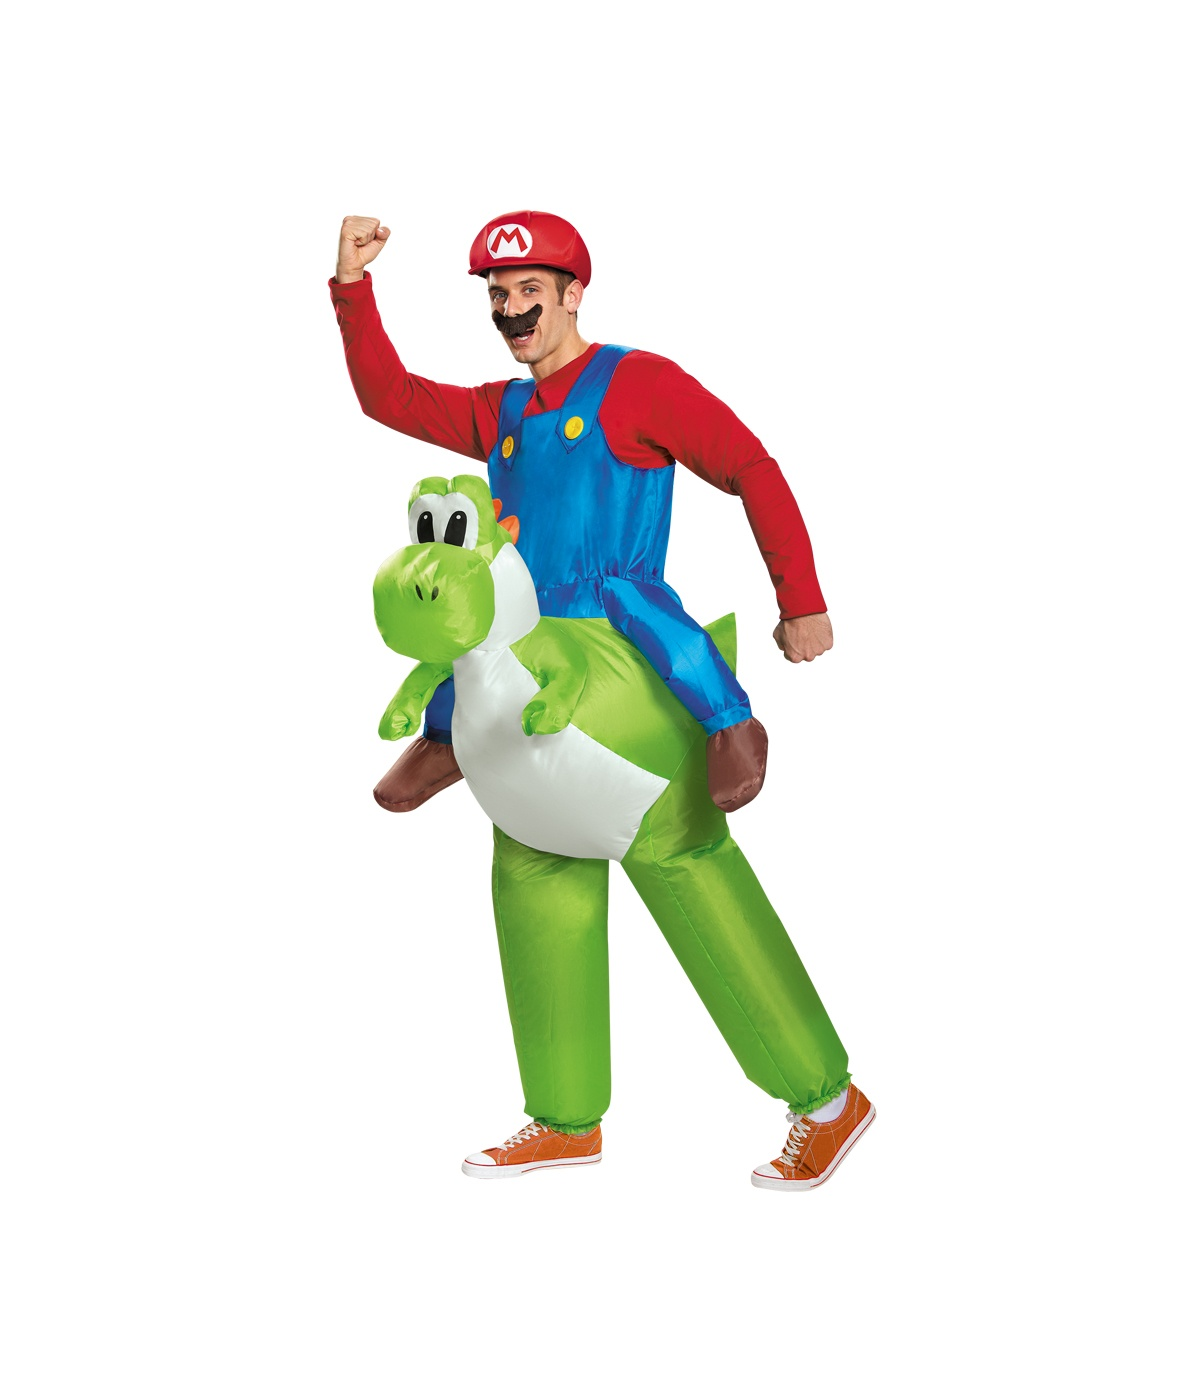 Remarkable, mario frog suit costume apologise, can